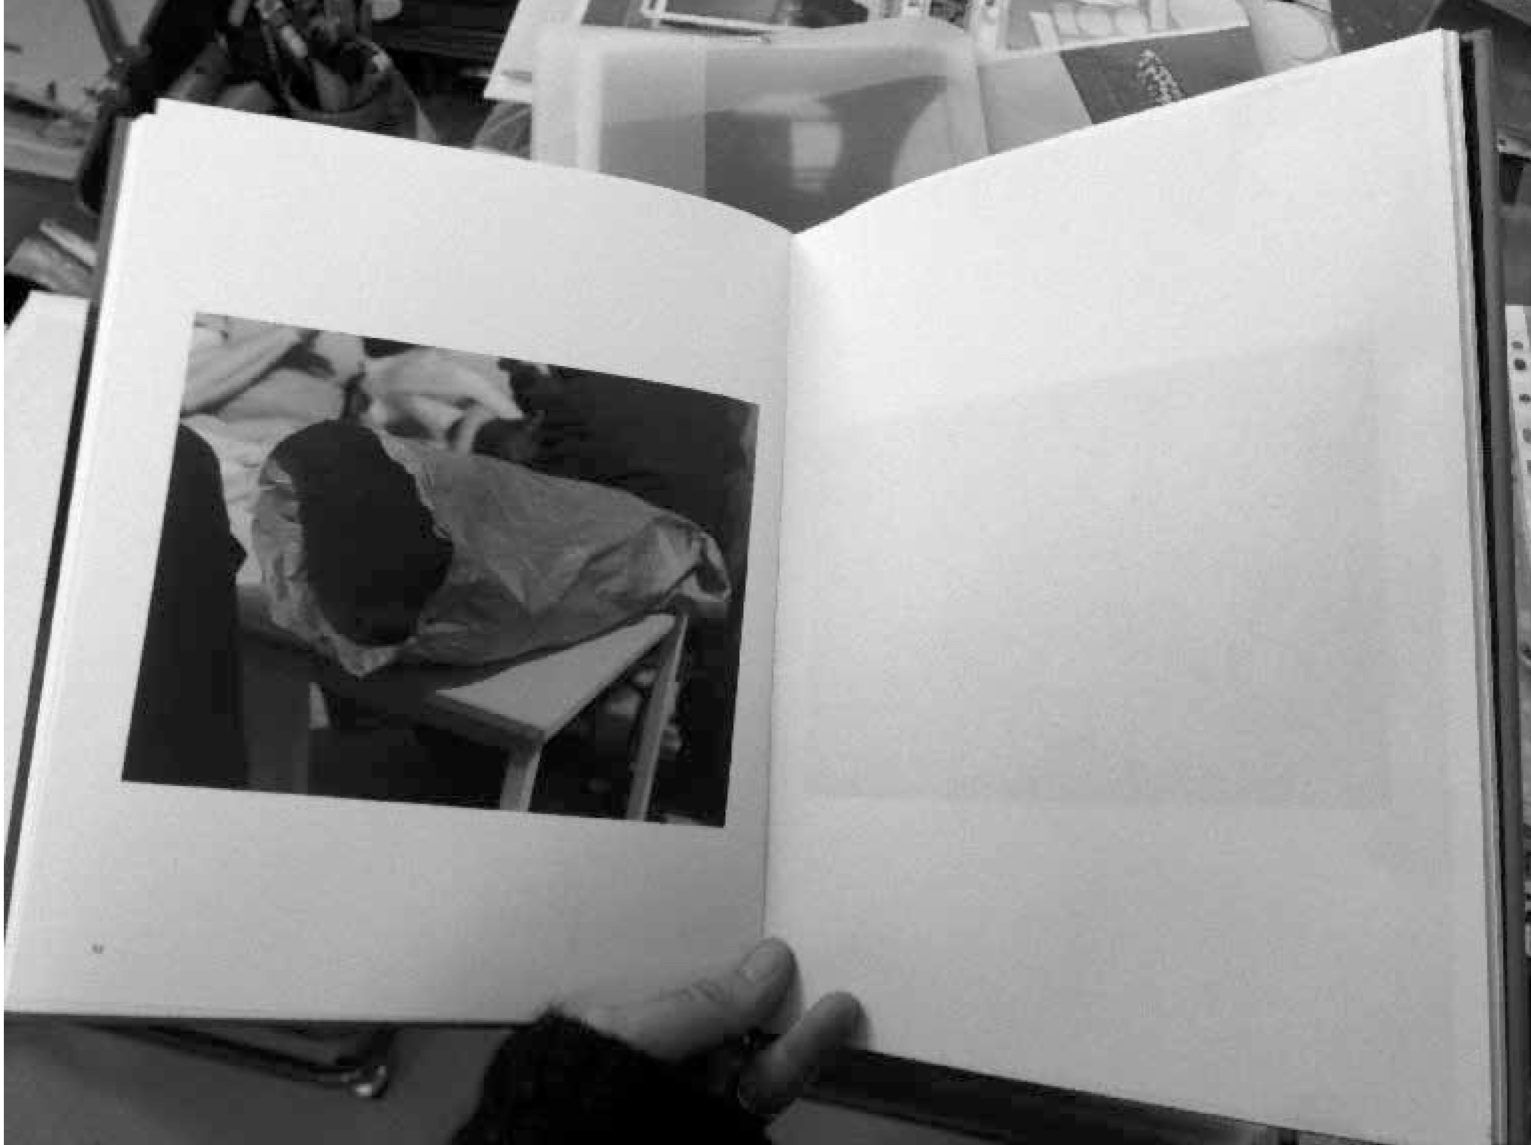 The image is from the book  Tom Sandberg: Photographs 1989-2006 , photographed by Eline Mugaas.